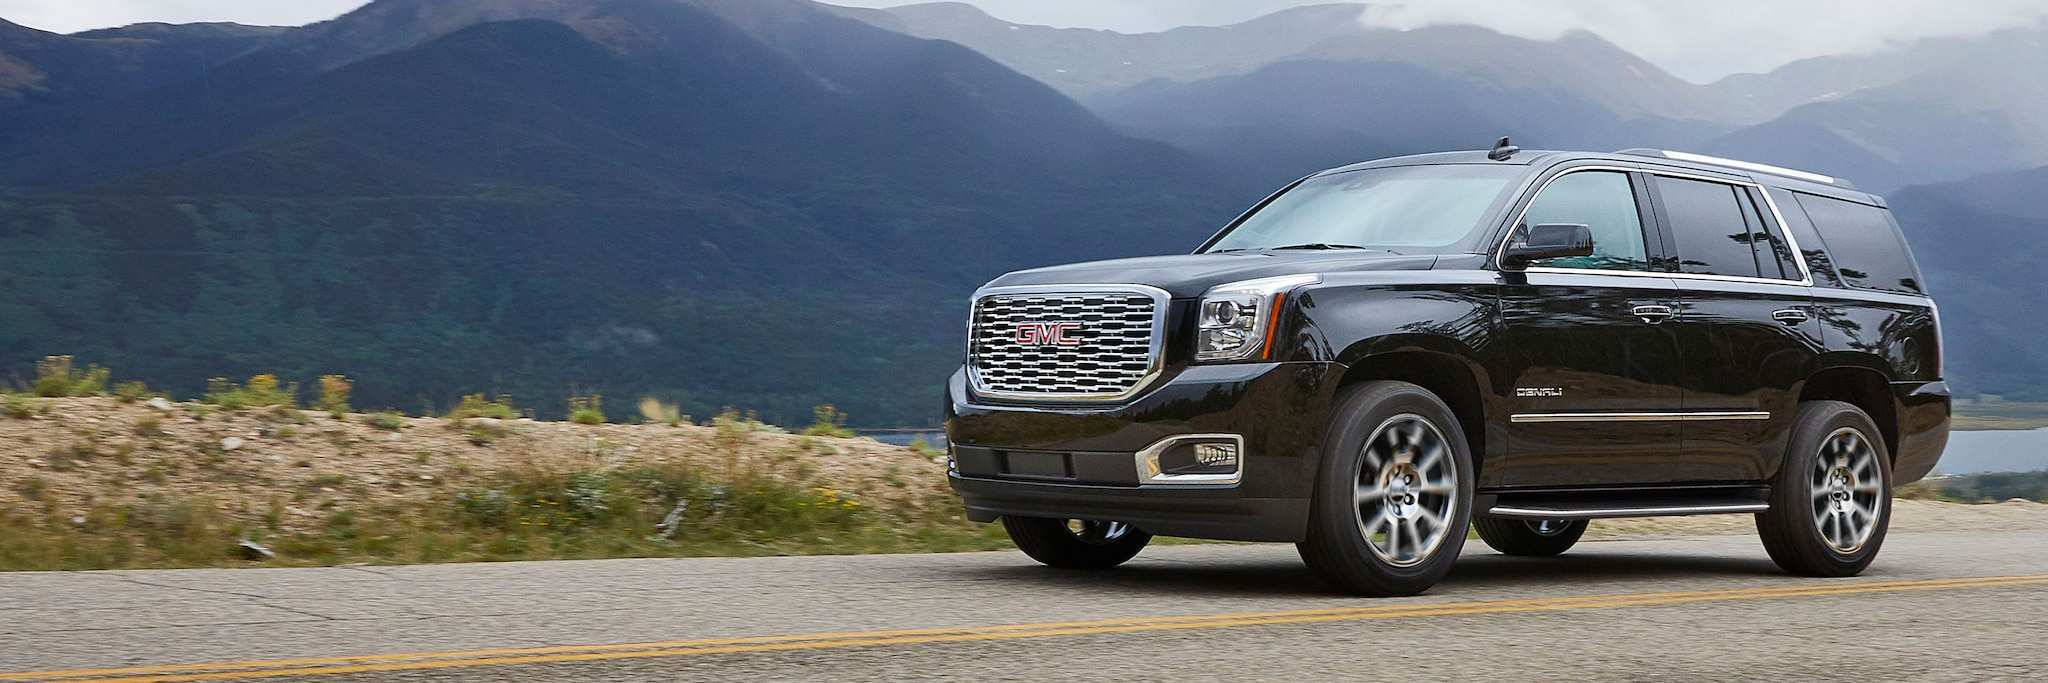 82 All New Chevrolet Yukon 2020 Overview